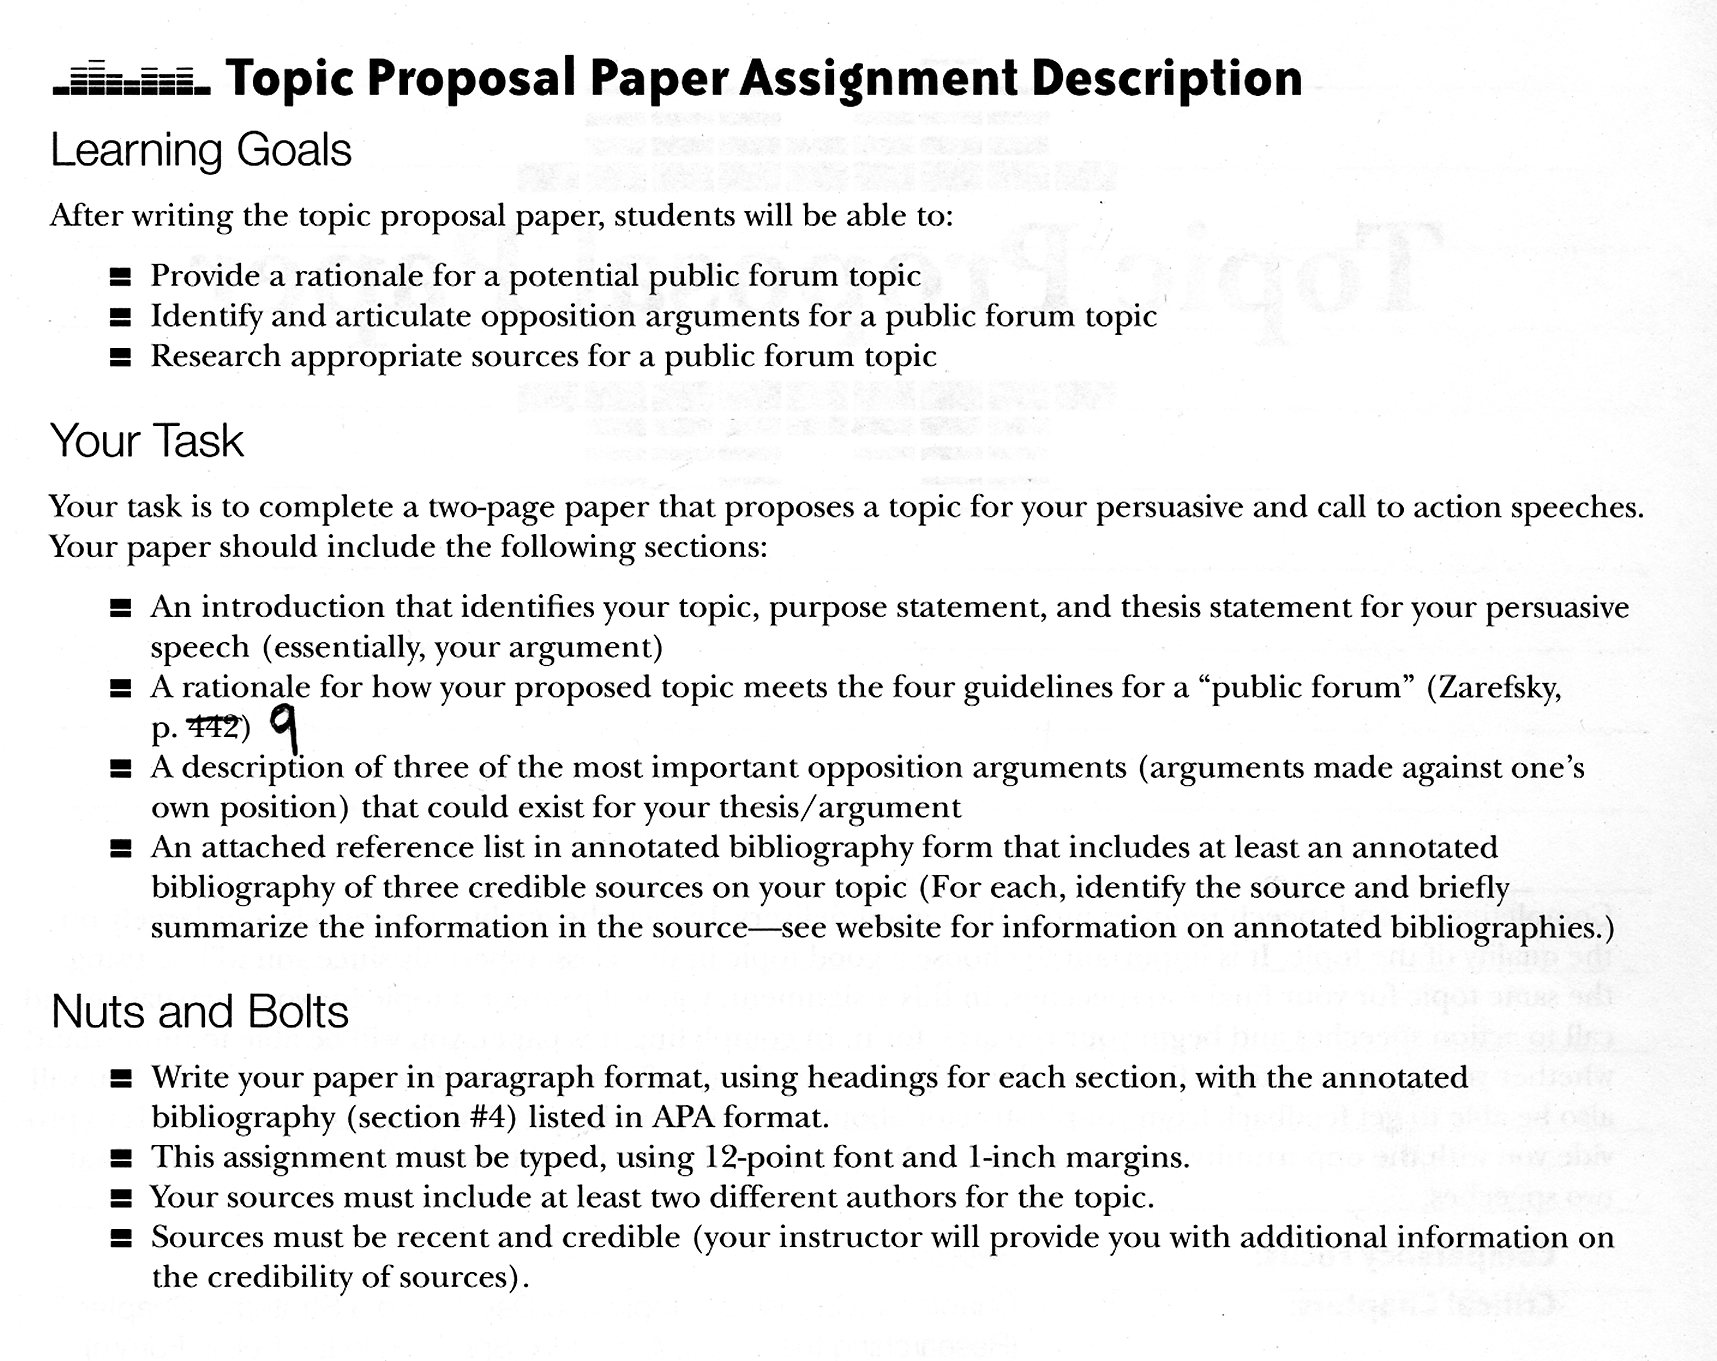 Destroying Avalon Essay Proposal Essay Topics Crucible Essay Proposal Essay Topic Ideas Prison  Studies By Malcolm X Essay Yesdearinc Pro Life Vs Pro Choice Essays also Sample Introduction Of An Essay Proposal Essay Topic Proposal Essay Topics Crucible Essay Proposal  Essay Land Pollution